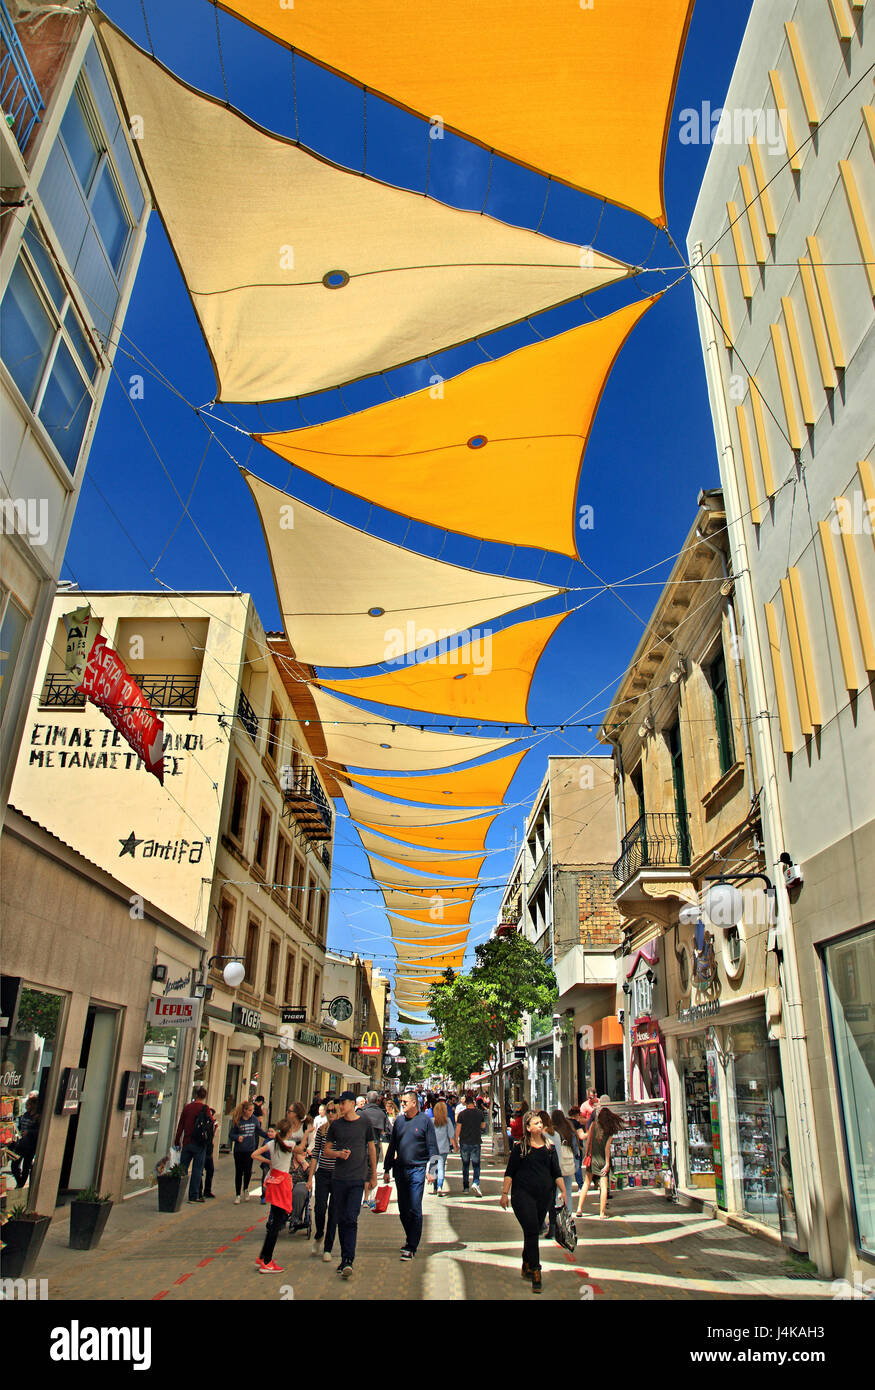 Ledra street, connecting the 2 sides of Nicosia (Lefkosia) the last divided capital of the world. - Stock Image